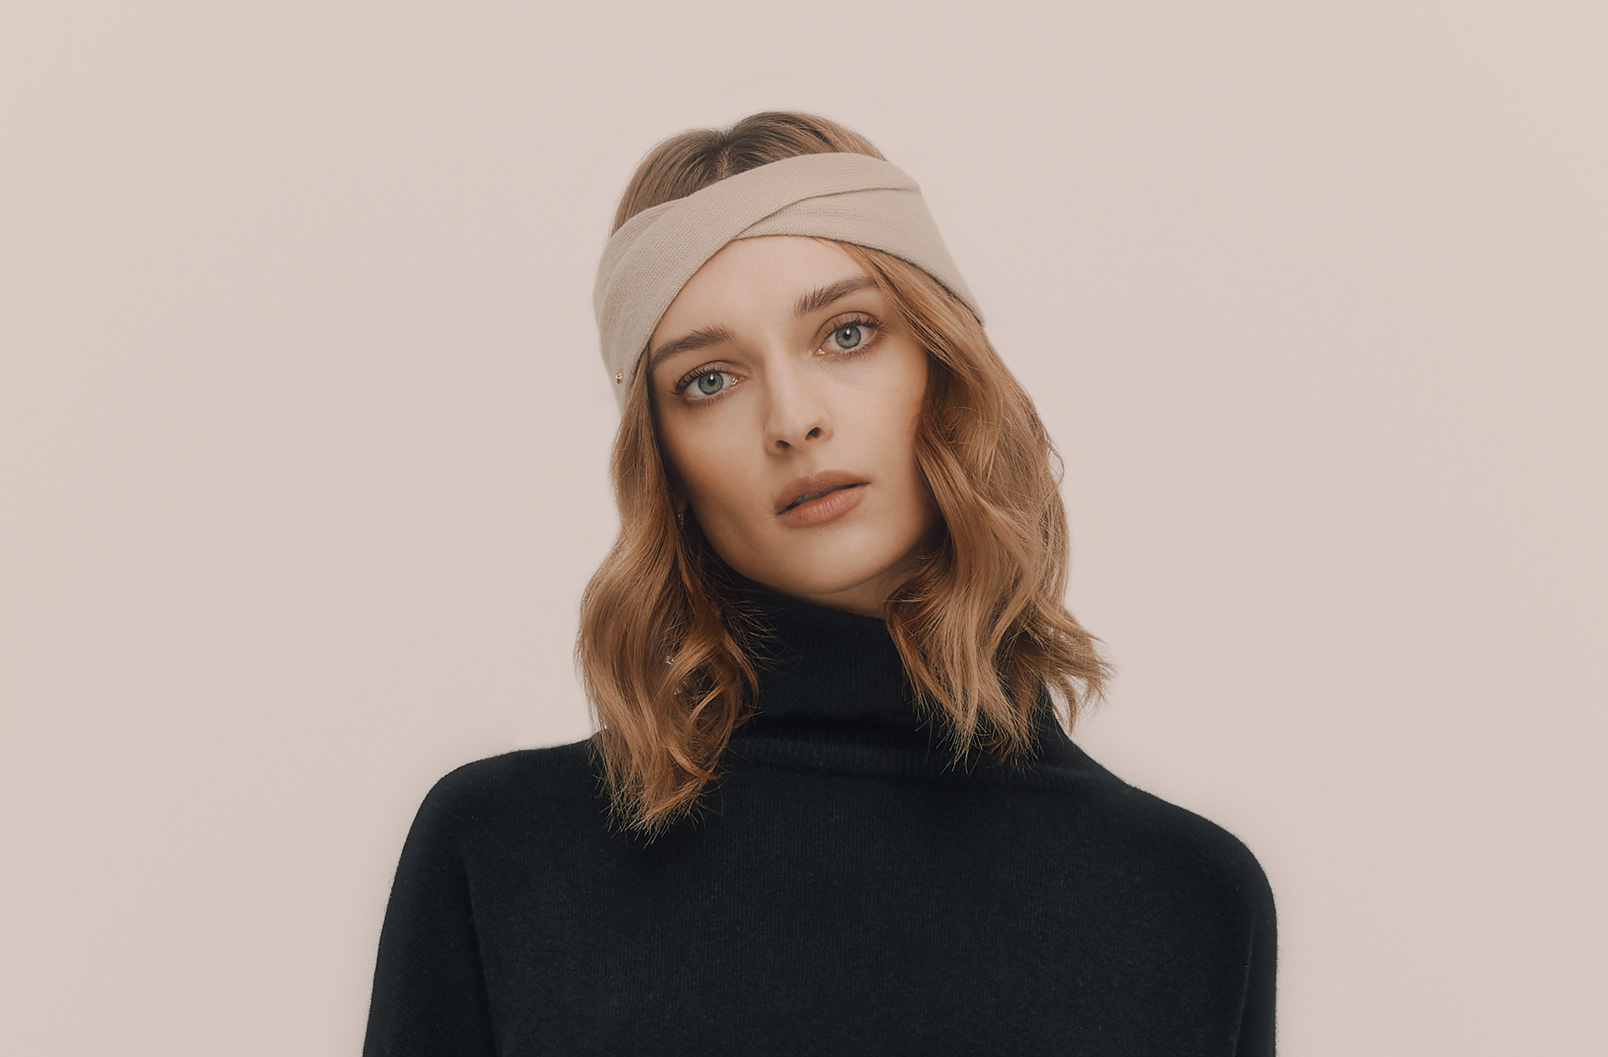 Cashmere headband on model